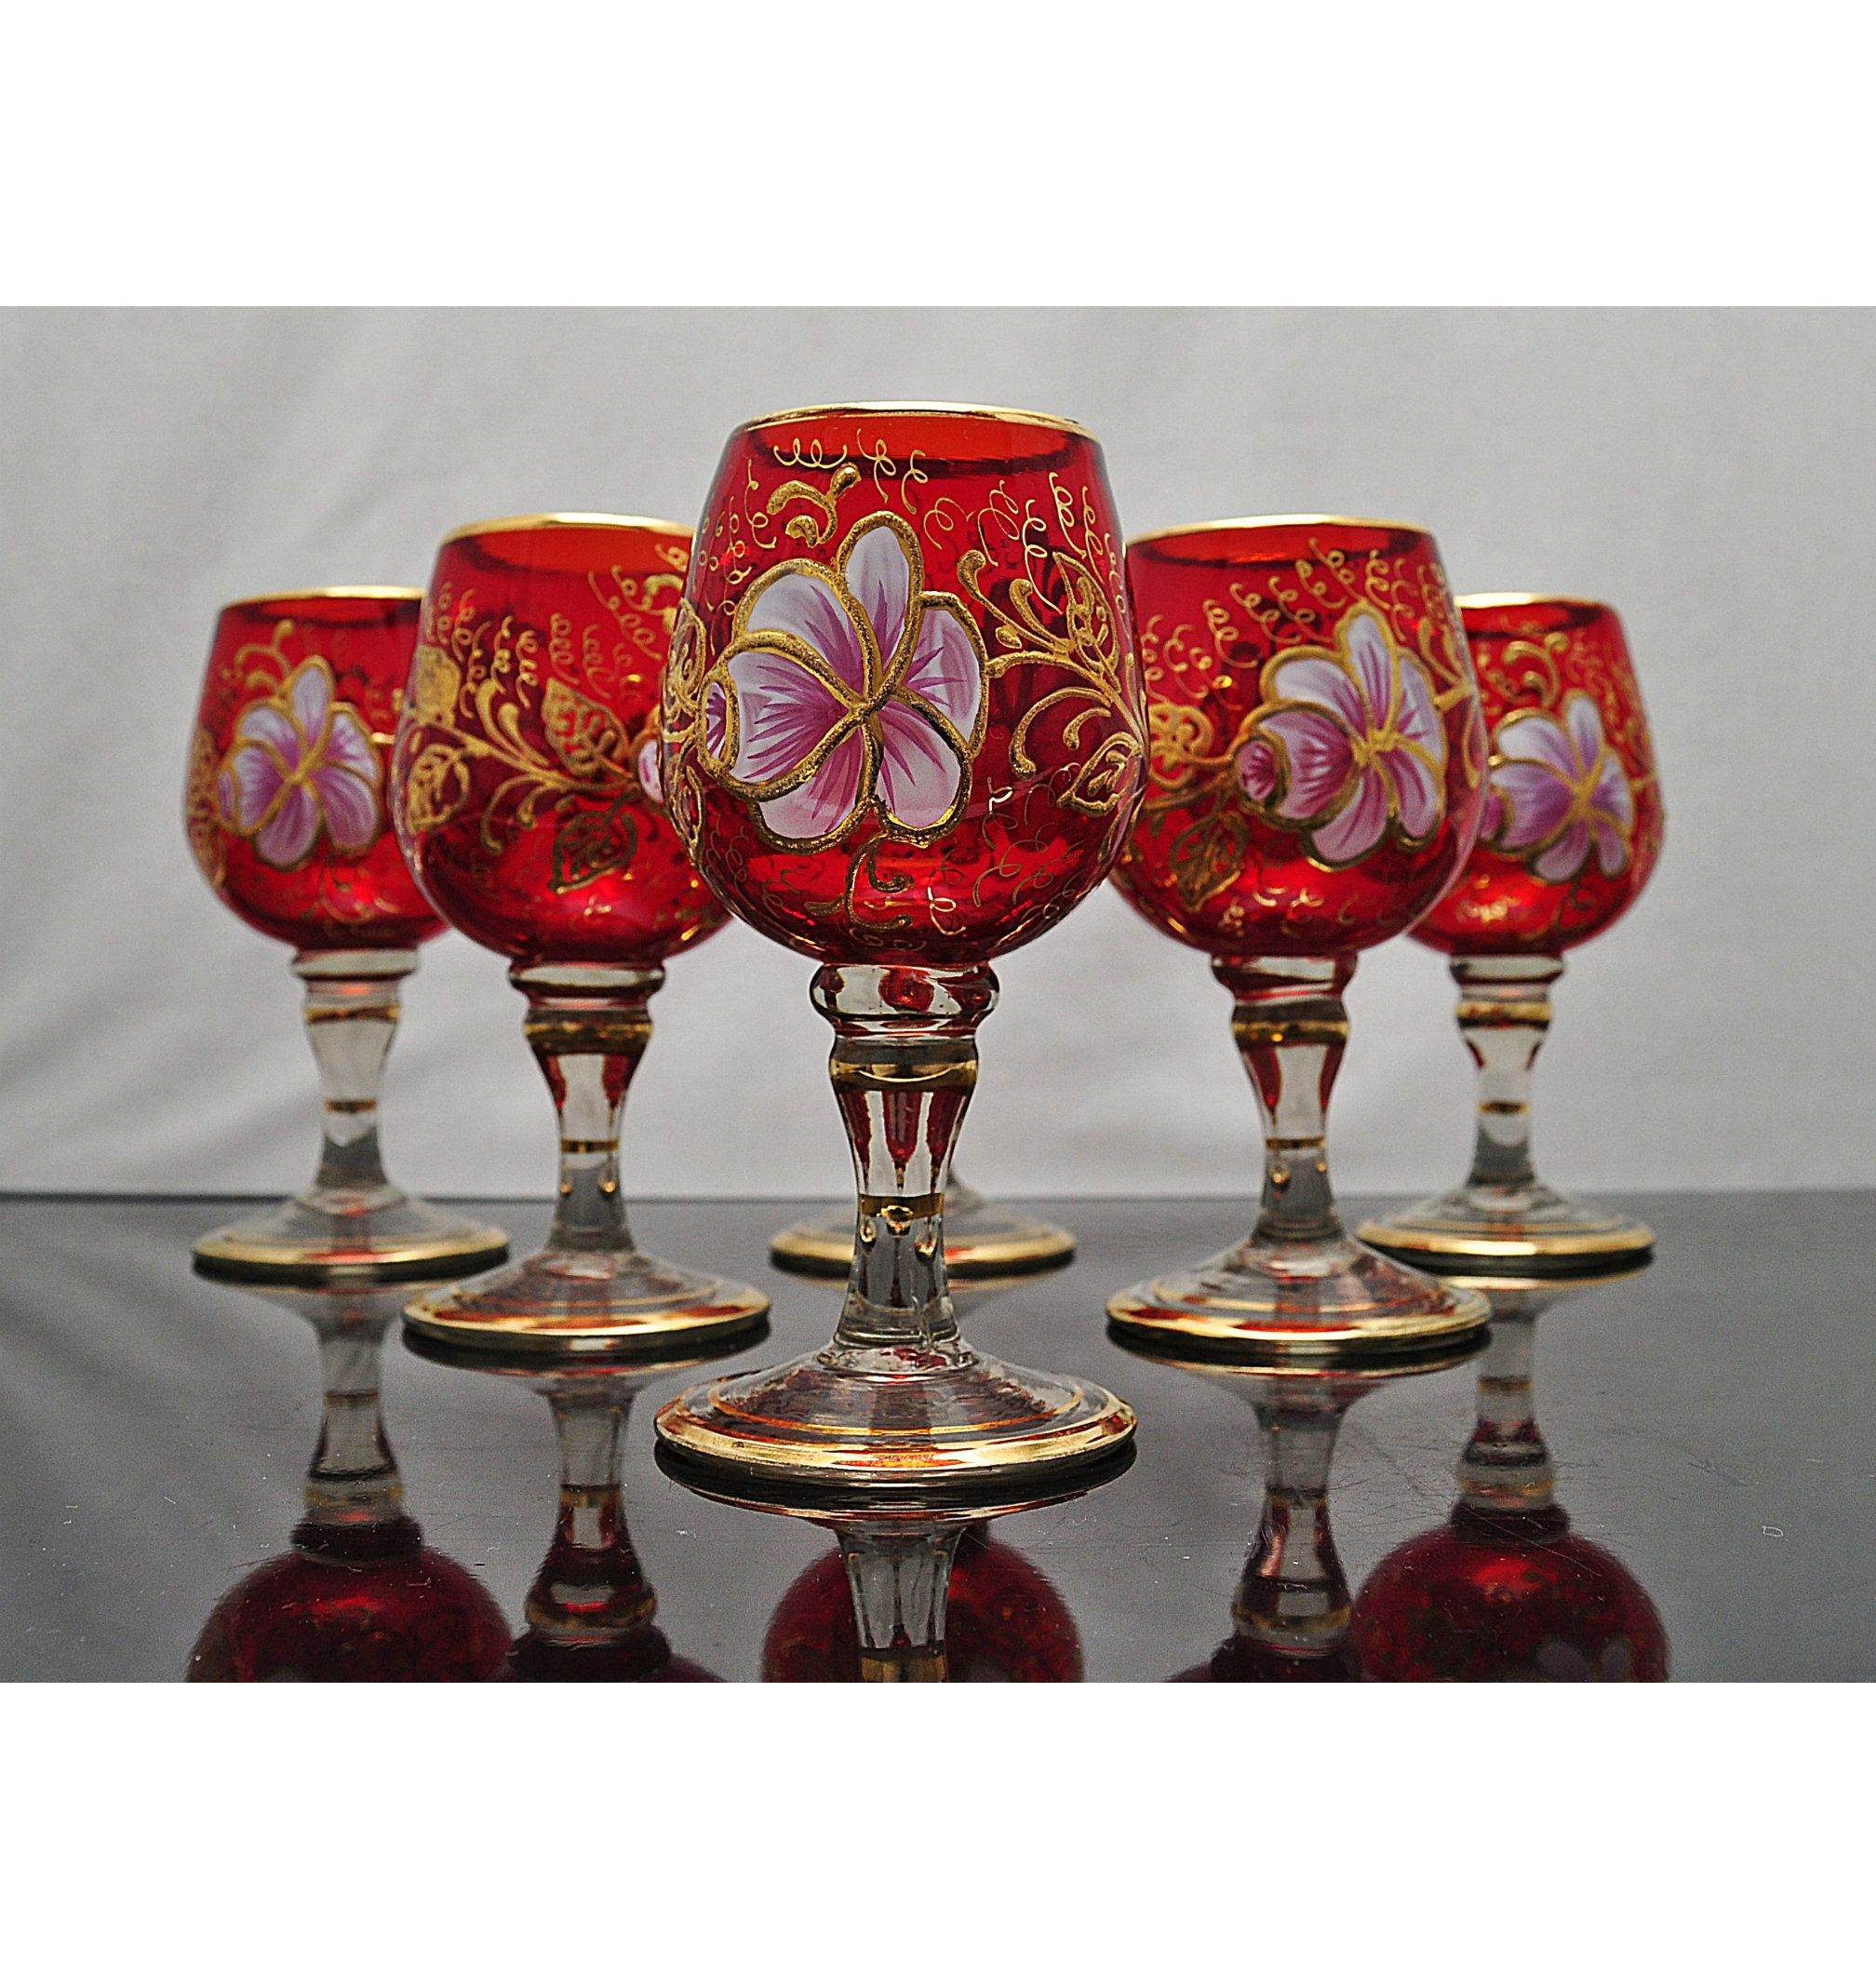 Vintage Czech Bohemian Red Gold Hand Painted Enamelled Wine Goblets Set Of Six By Glasseclecticshop On Etsy In 2020 Gold Hands Wine Goblets Glass Set